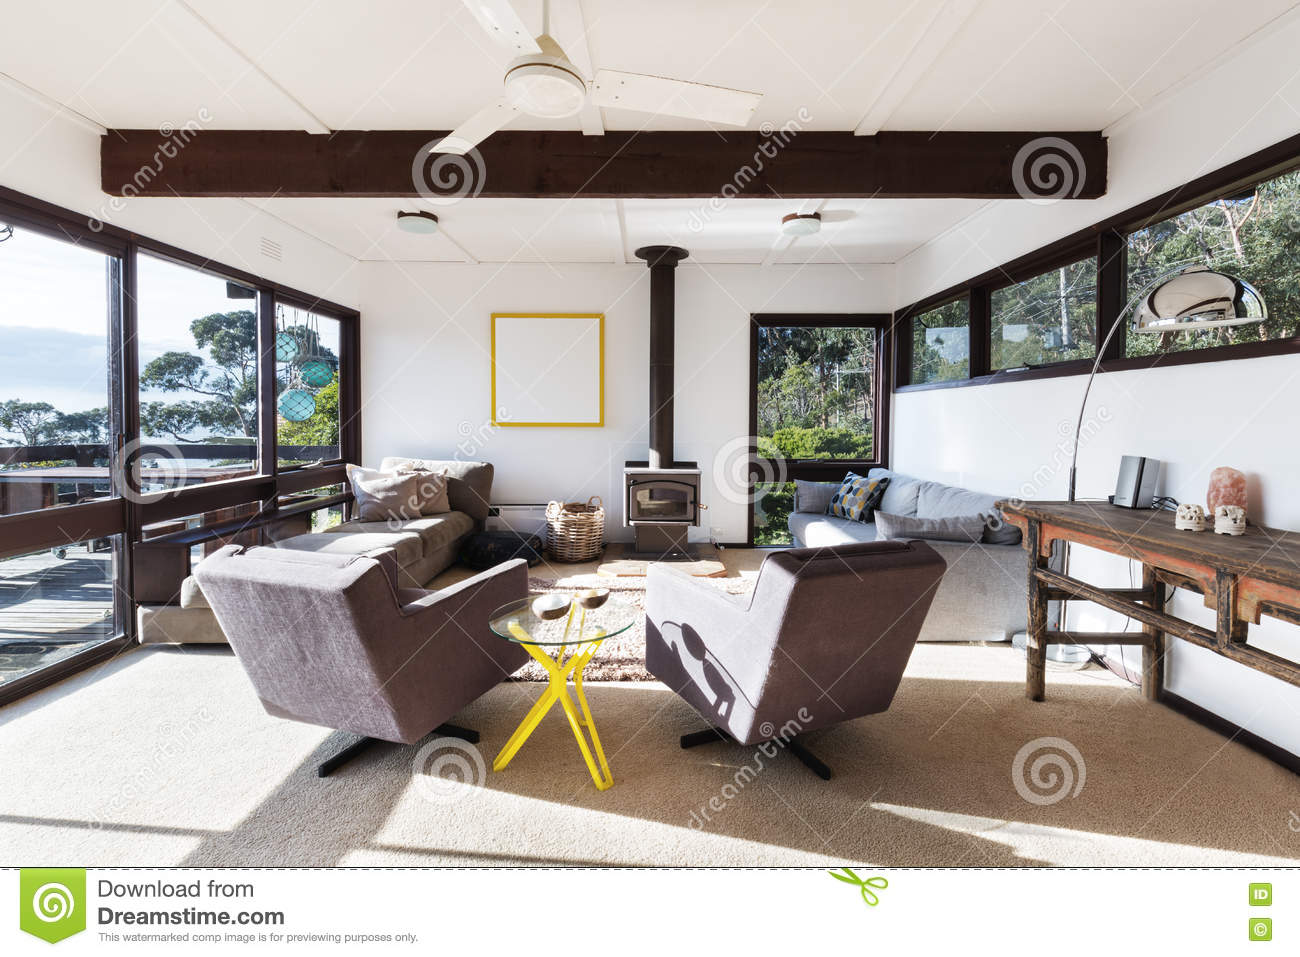 Funky Retro Beach House Living Room With 70s Style Chairs